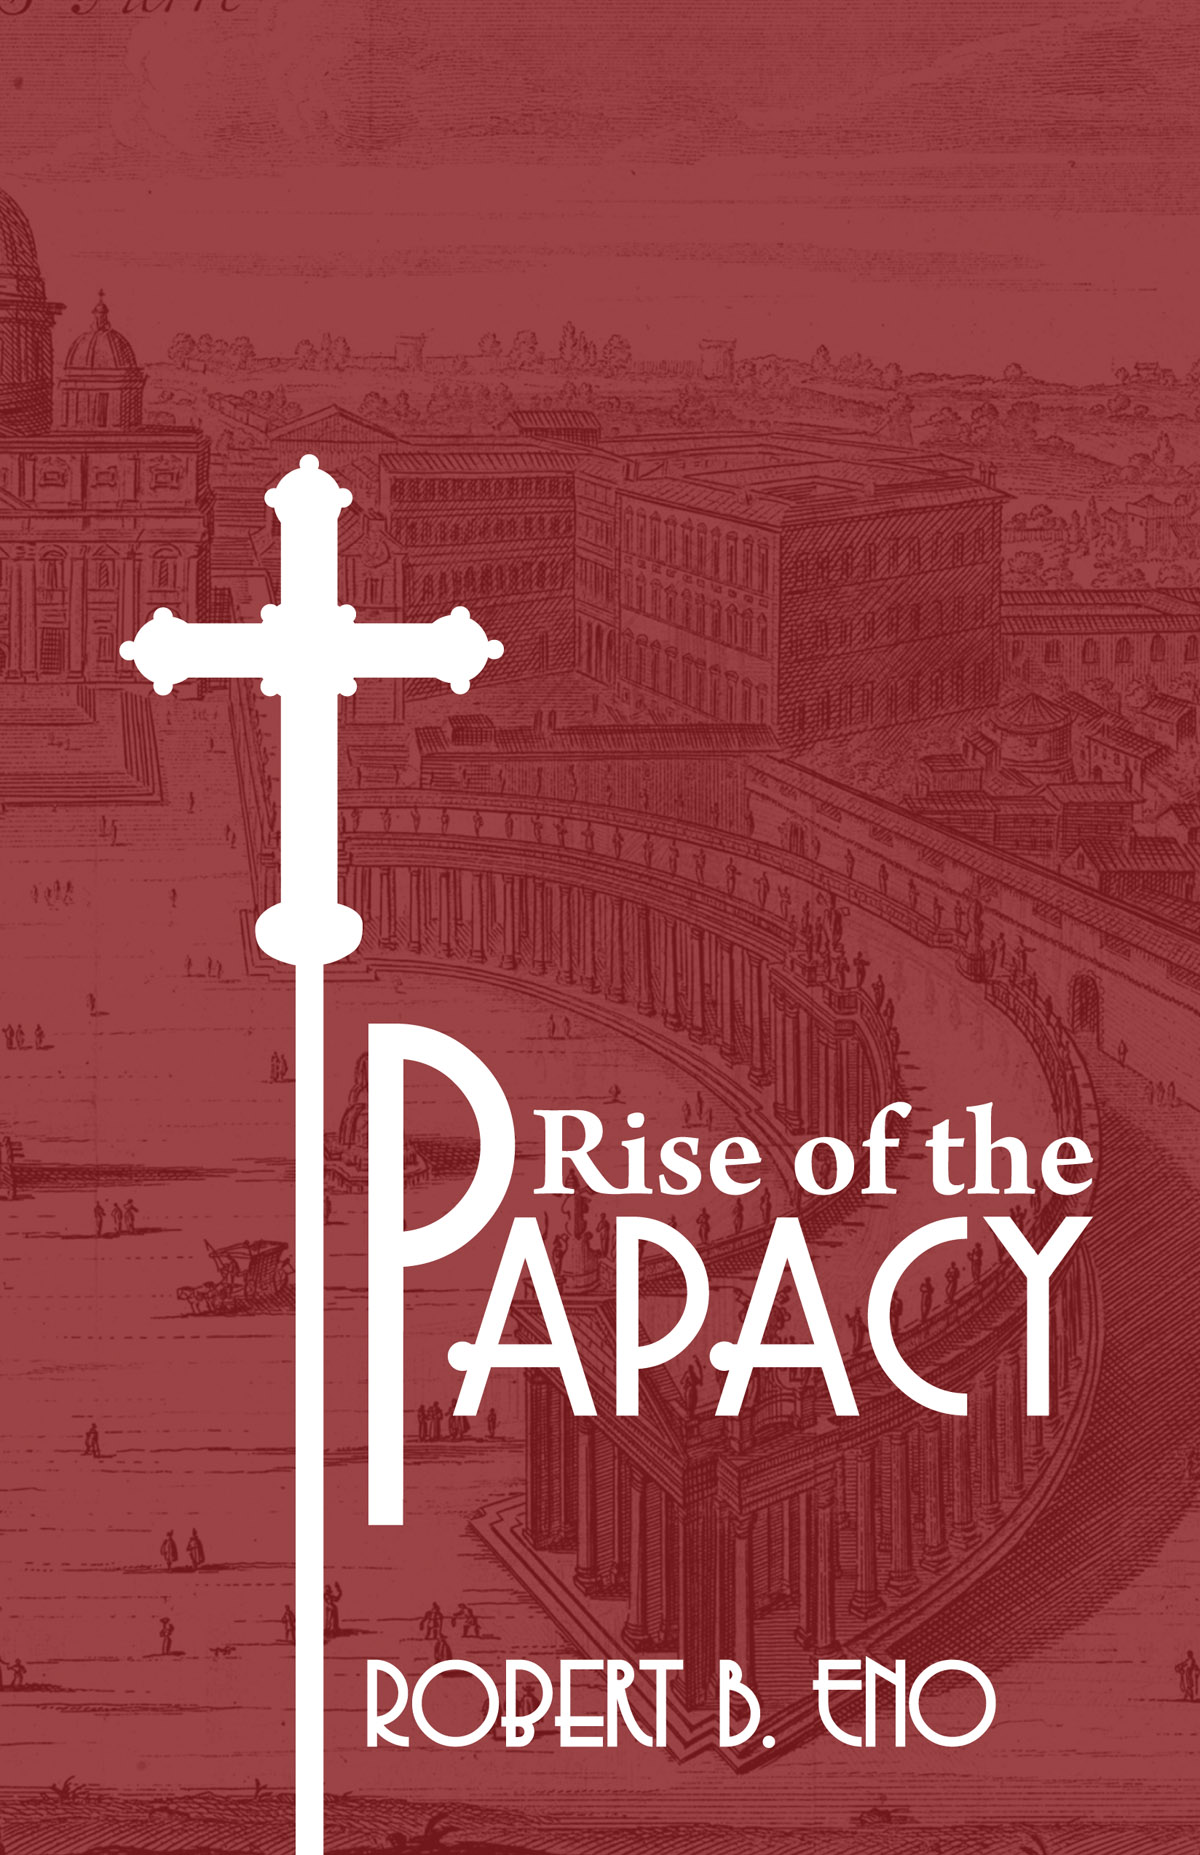 the rise of the papacy Lawler's focus is upon helping his readers understand francis's papacy and what  it might mean for the catholic church in the long-term.